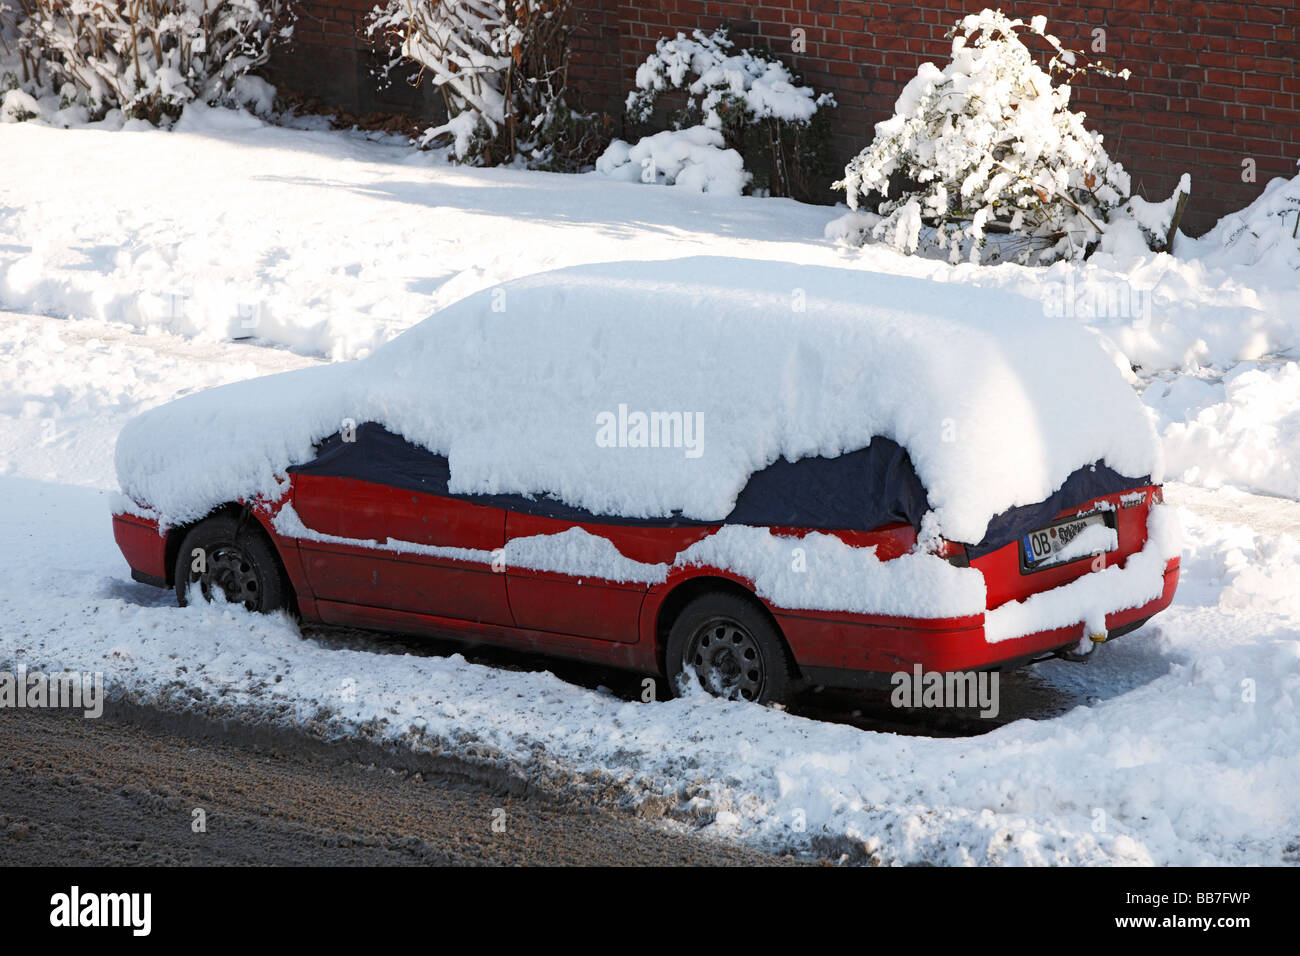 seasons, winter, coldness, snow, traffic, snow-covered automobile at the roadside, passenger car - Stock Image